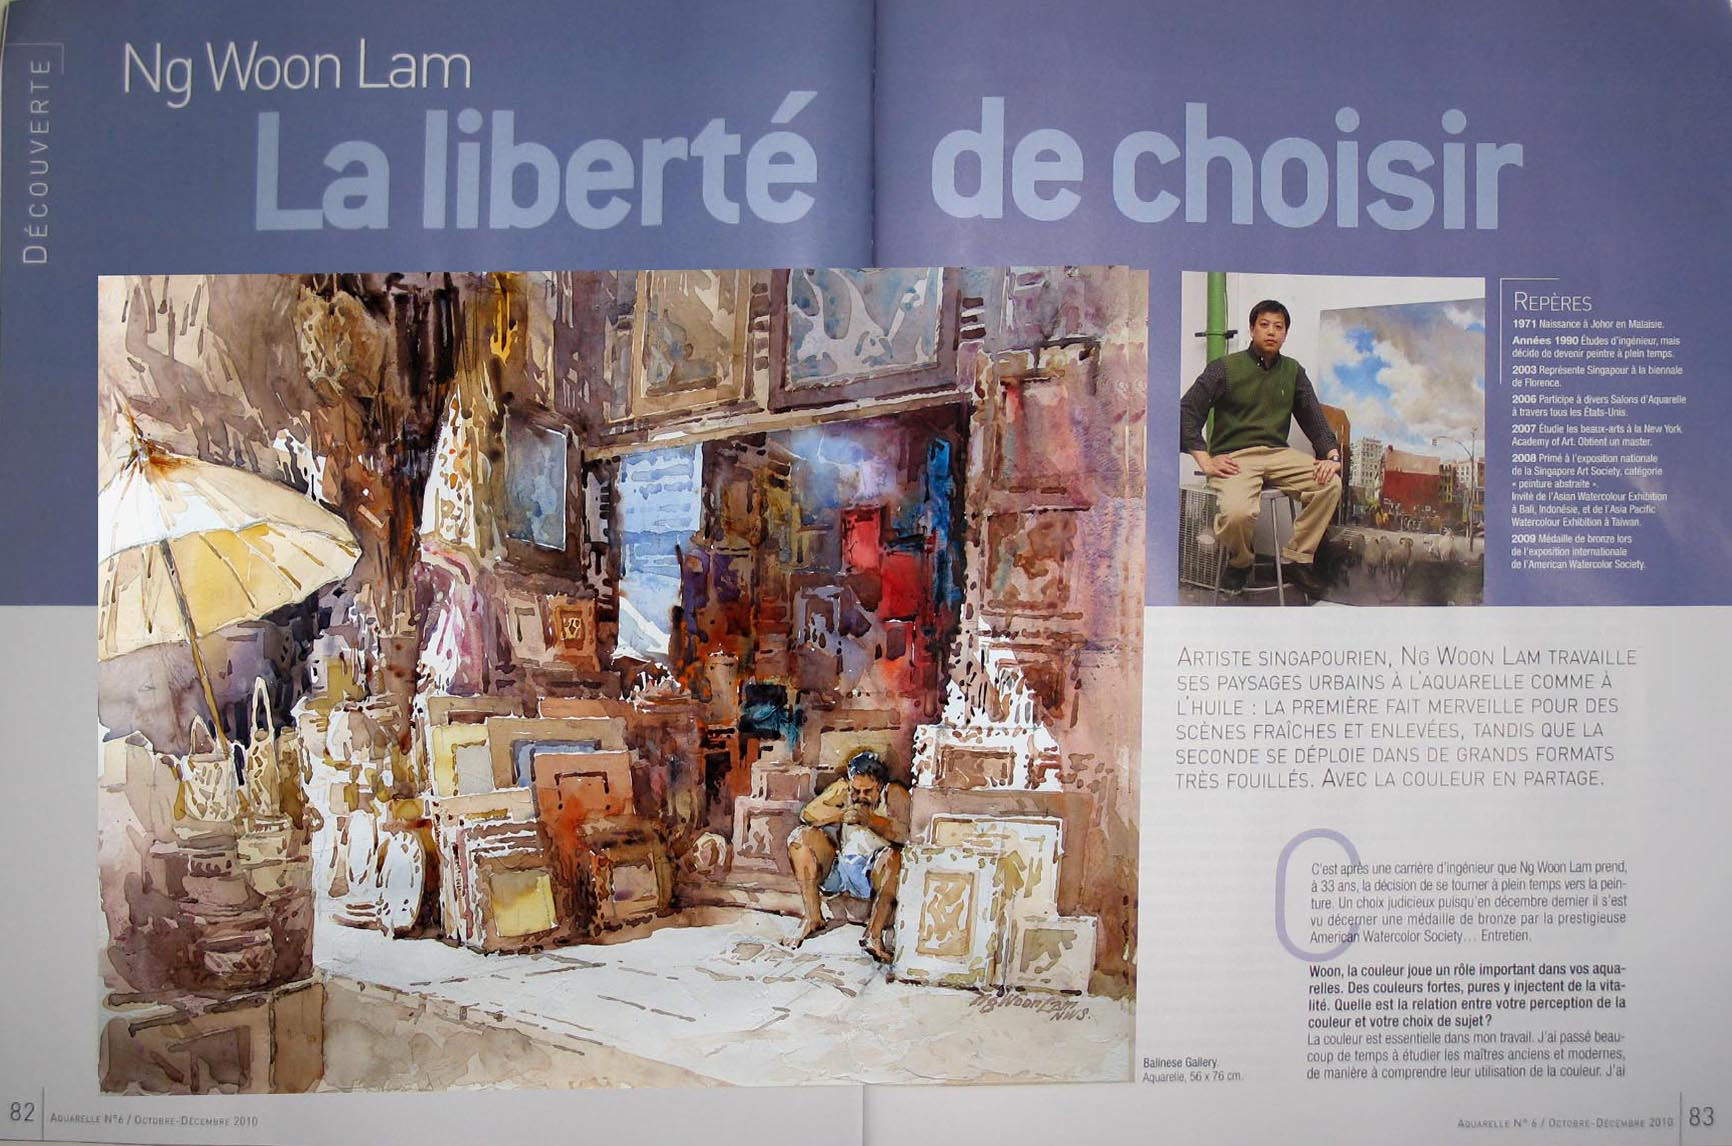 Watercolor artist magazine review - L Art De L Aquarelle Ng Woon Lam Aws Nws Mfa Feature In French Watercolor Art Magazine